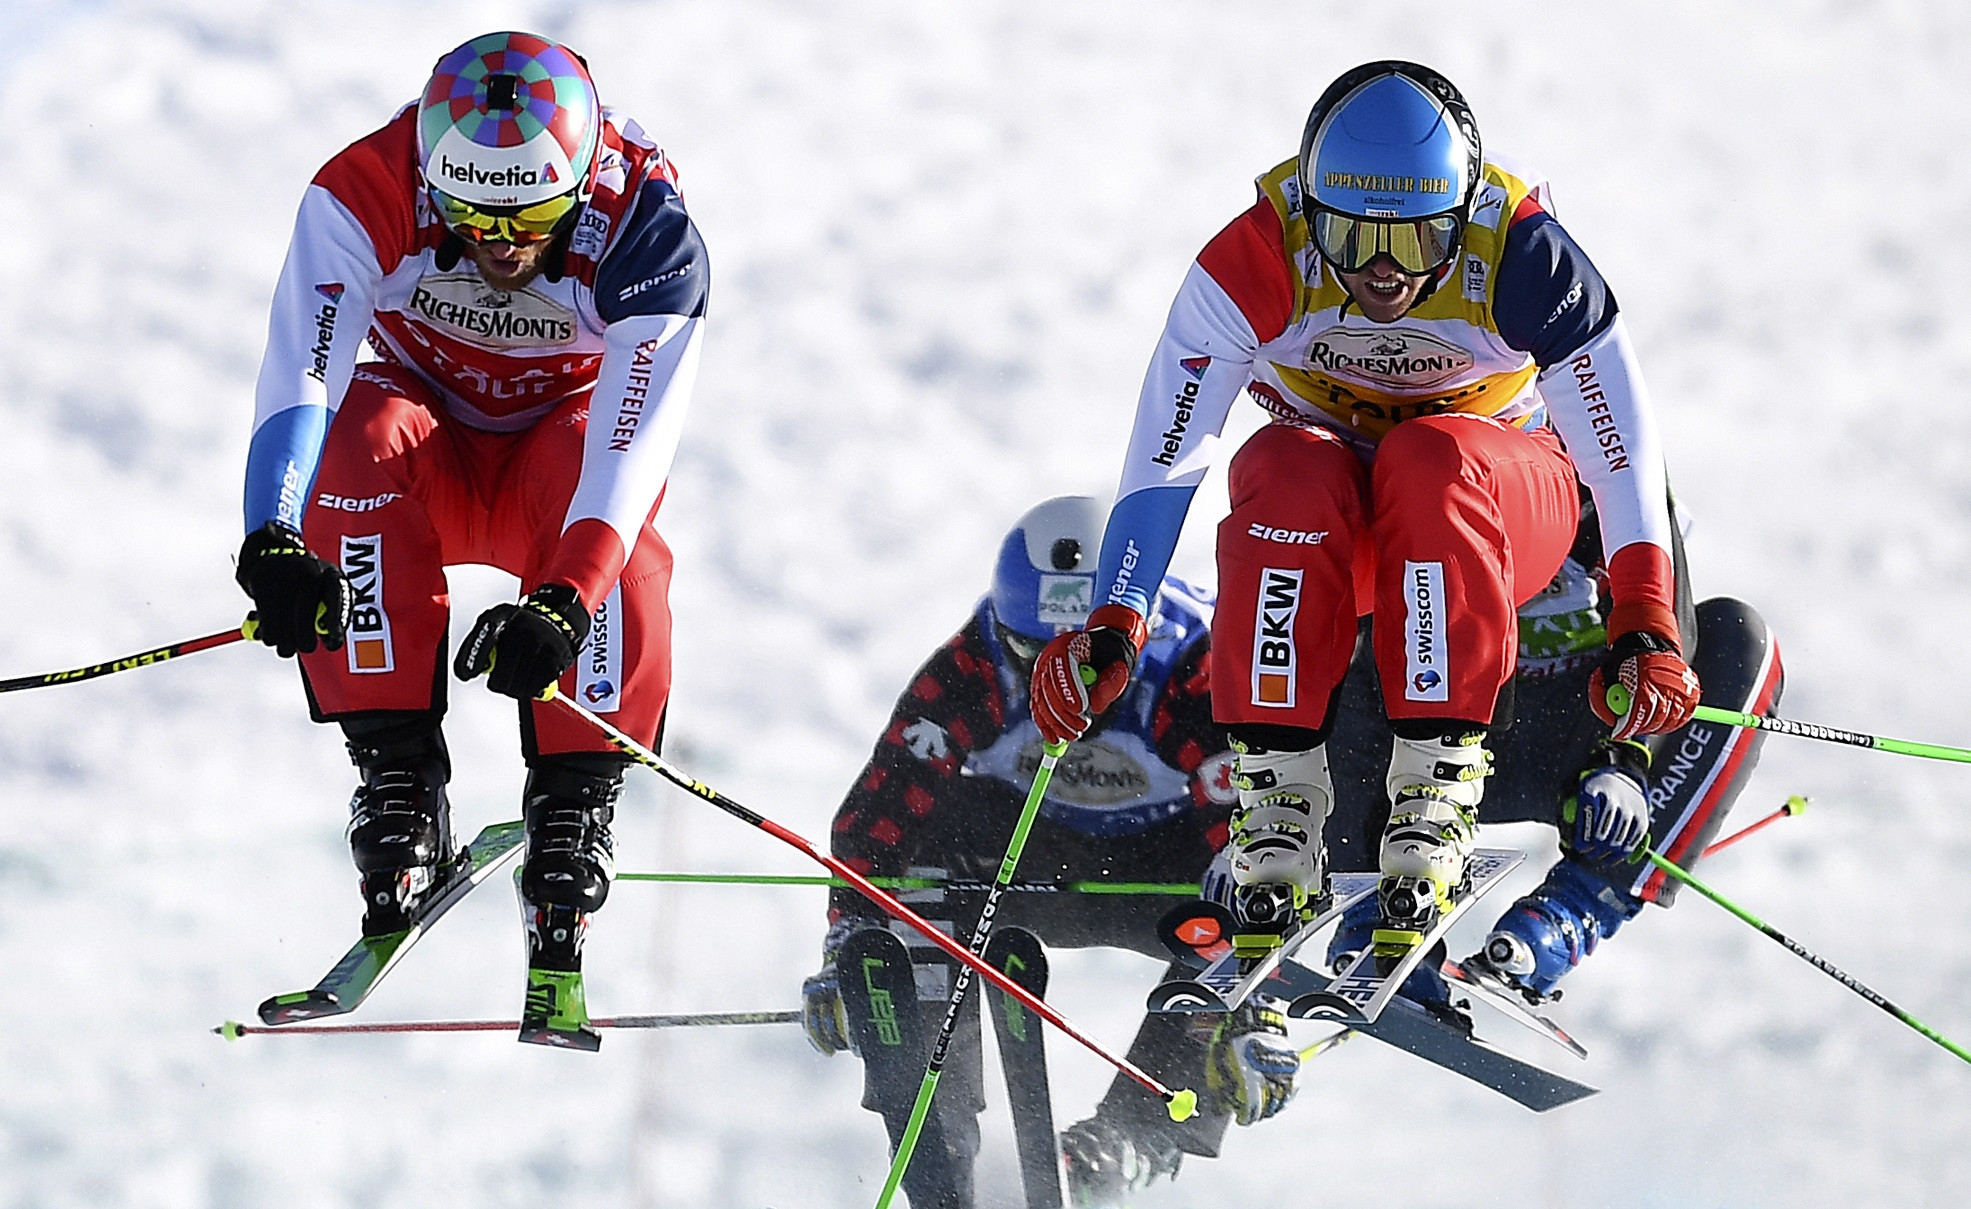 FIS Ski Cross World Cup set to resume in Idre Fjäll